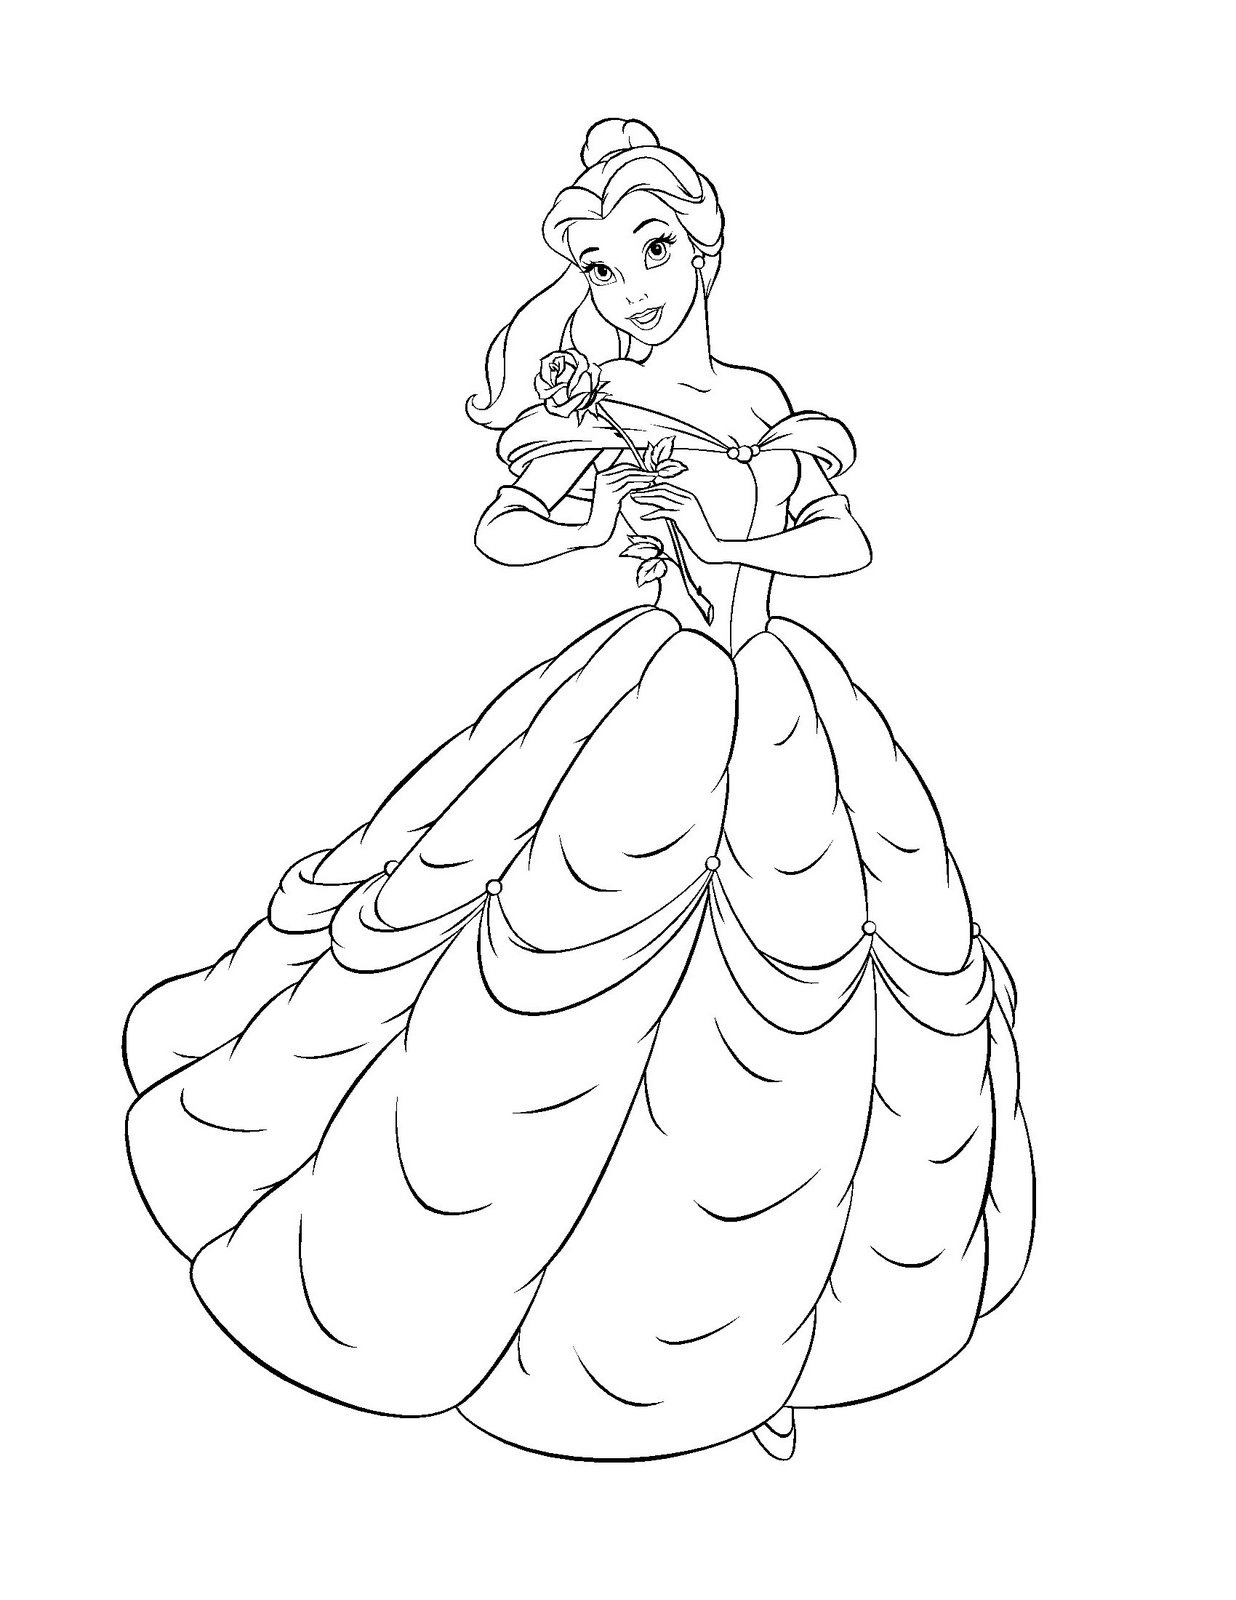 Belle Coloring Pages - coloring.rocks!